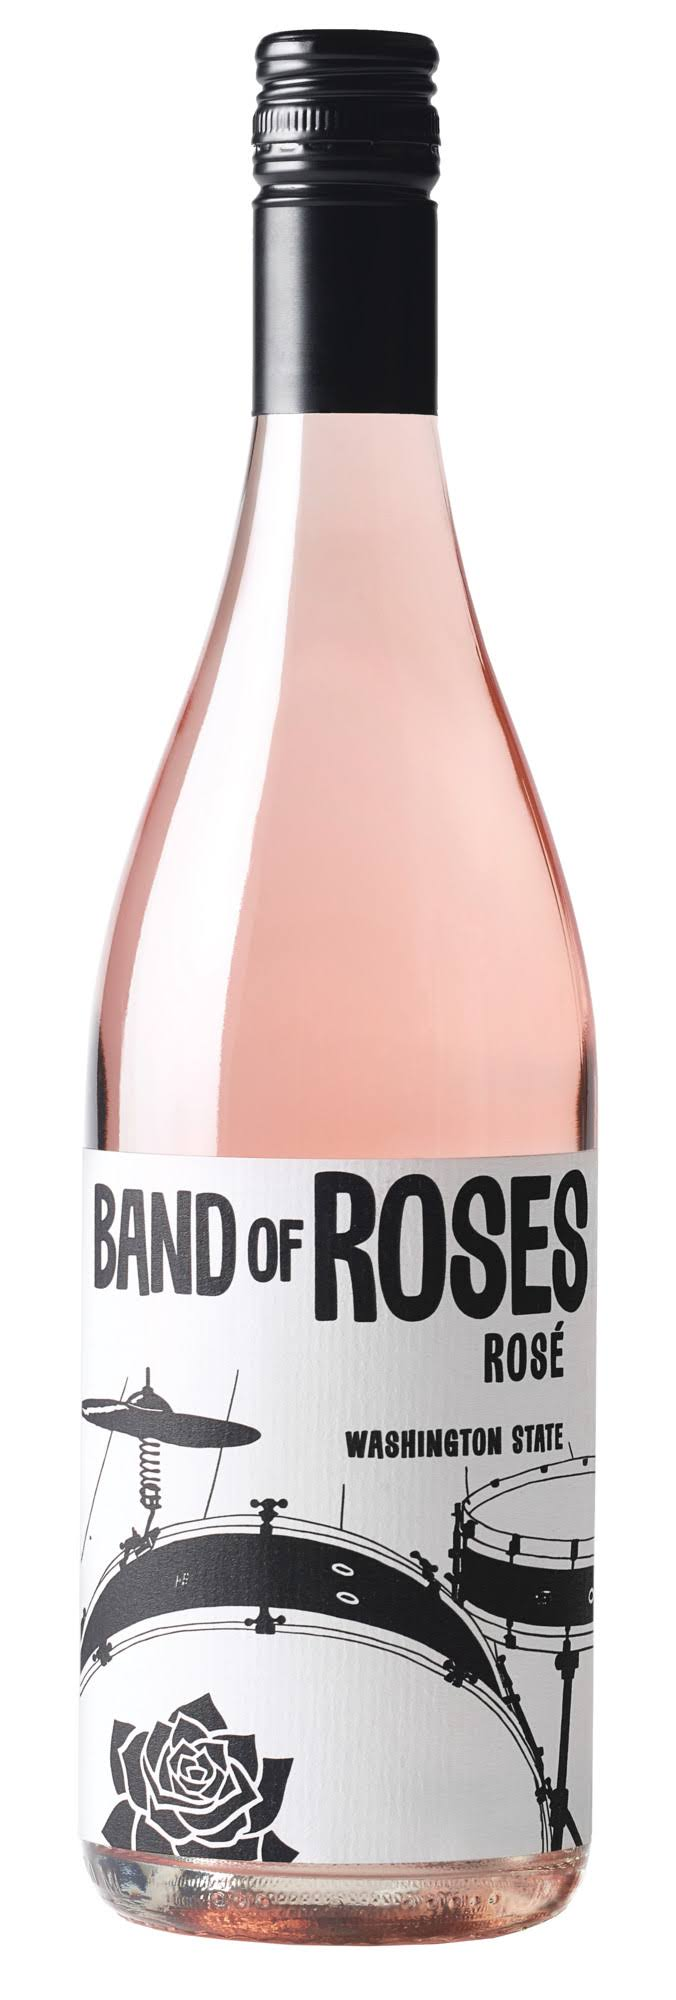 Band of Roses Rose 2017 750ml